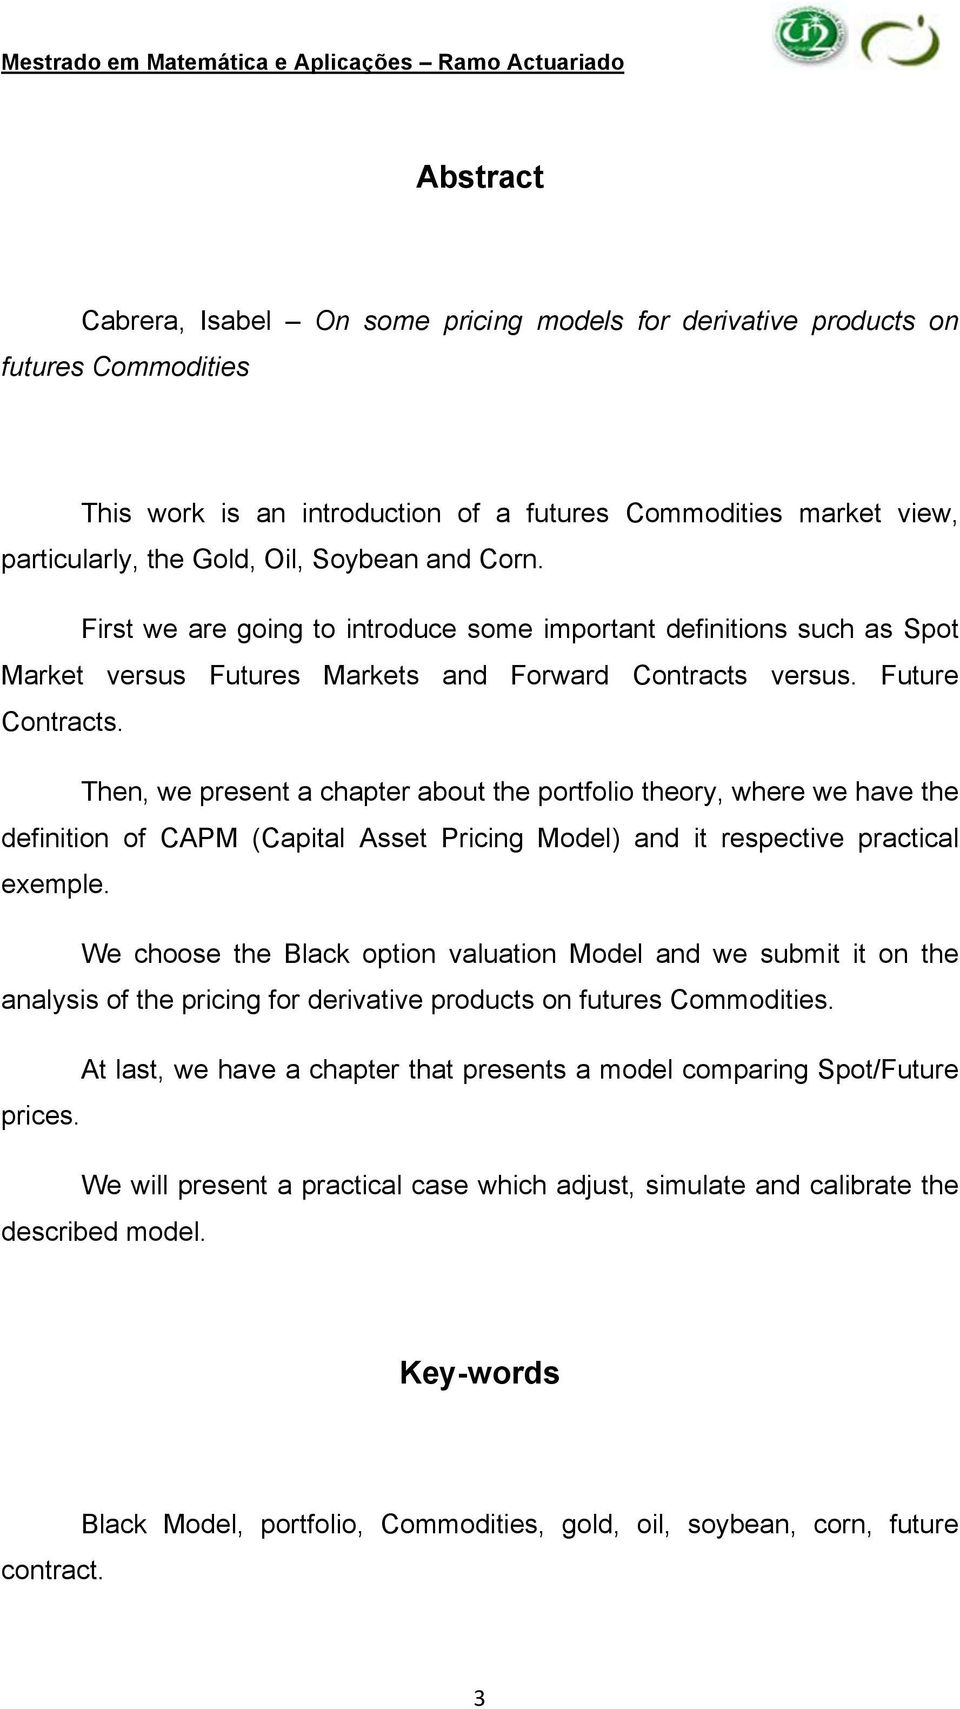 Then, we present a chapter about the portfolio theory, where we have the definition of CAPM (Capital Asset Pricing Model) and it respective practical exemple.